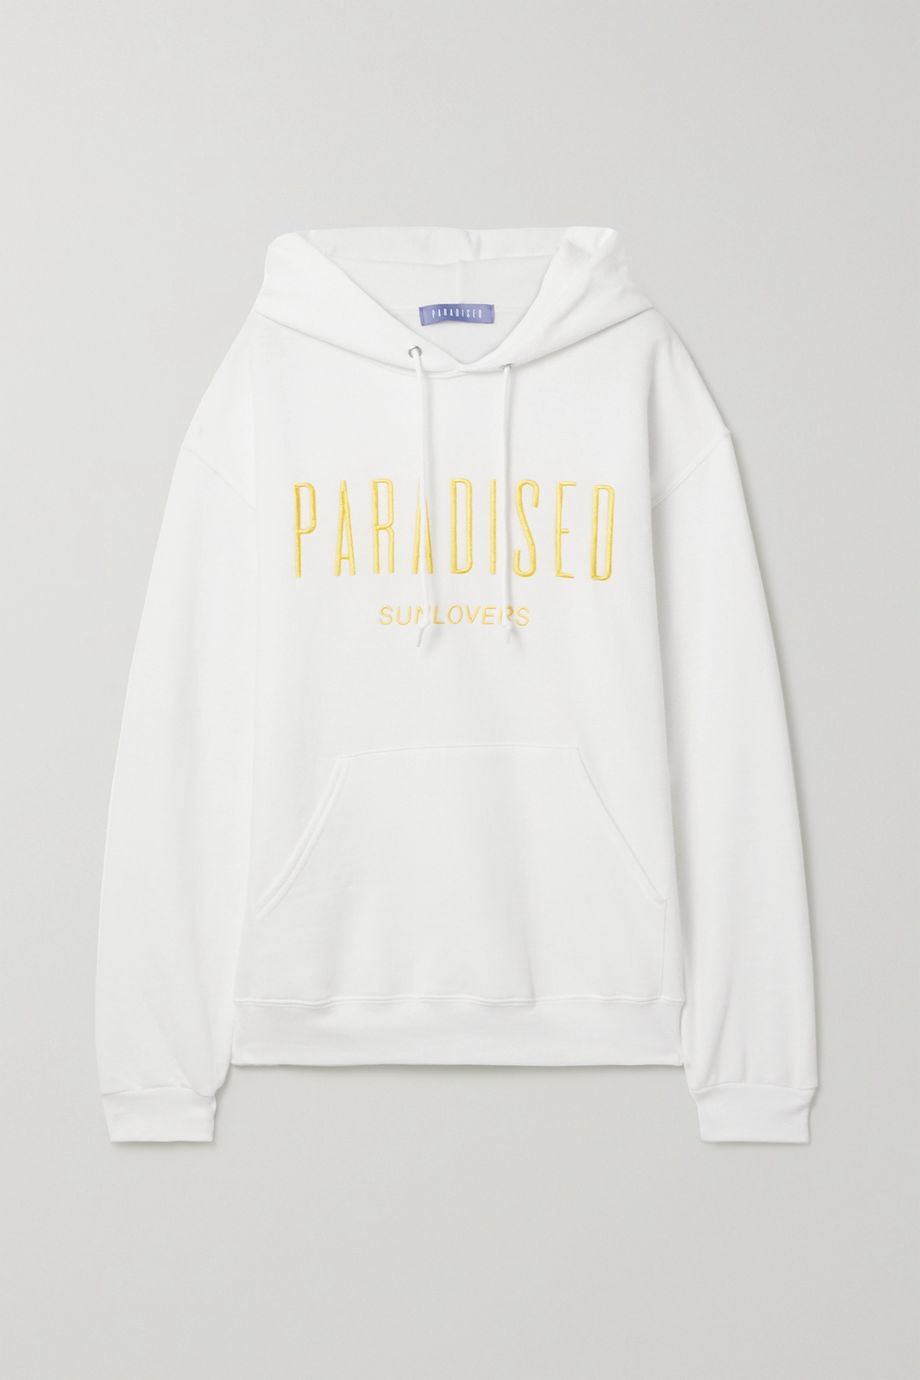 Paradised Sunlovers embroidered cotton-blend jersey hoodie